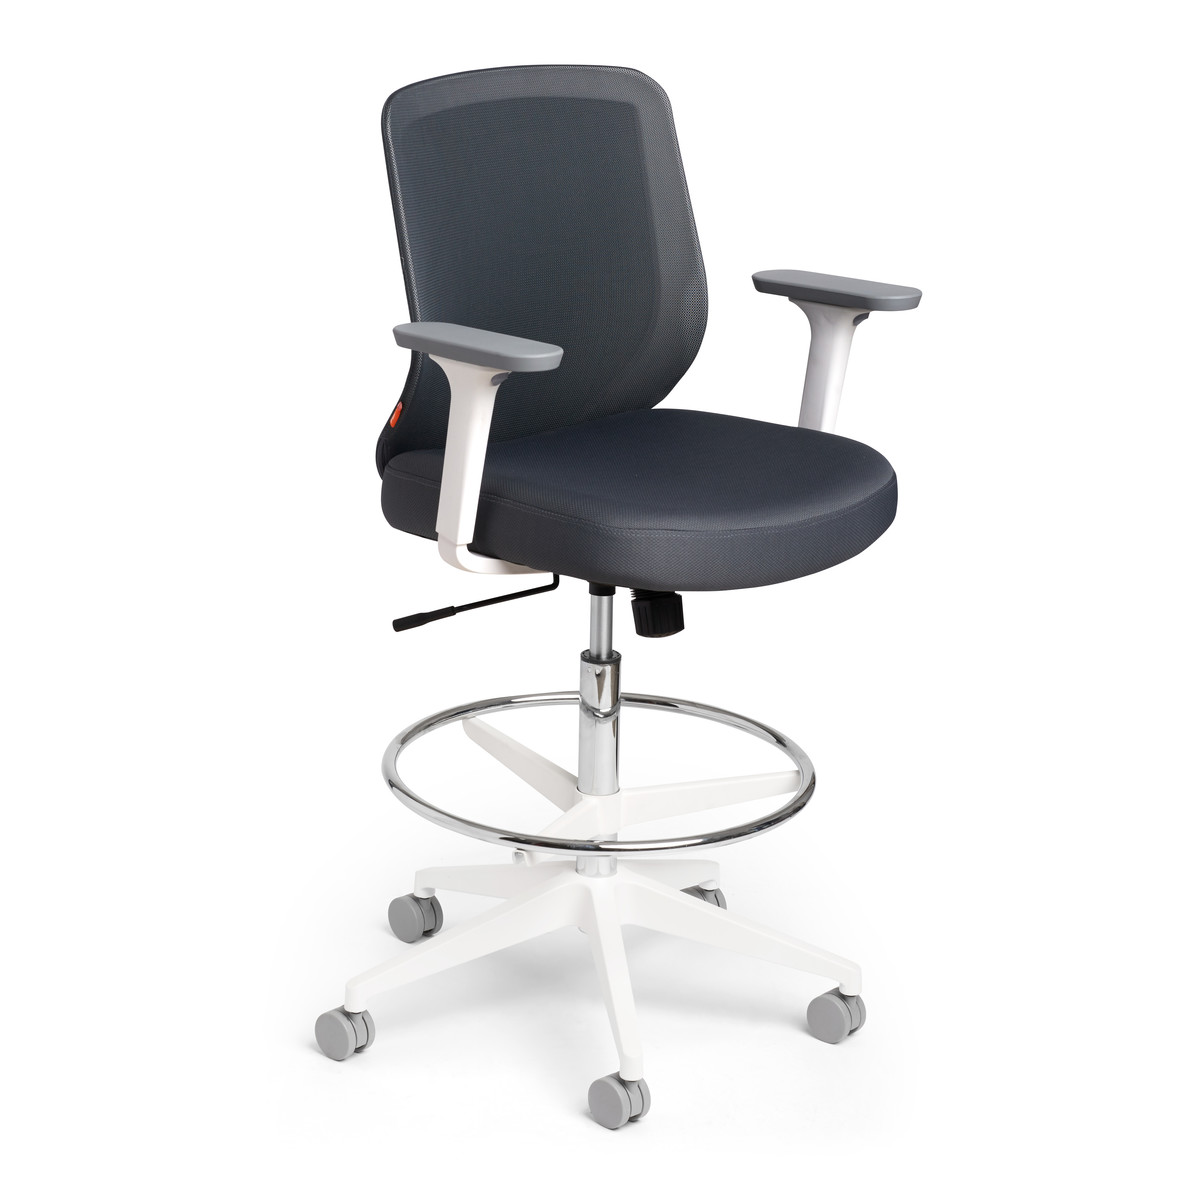 drafting chairs with arms outdoor ottomans max chair mid back white frame modern office furniture dark gray